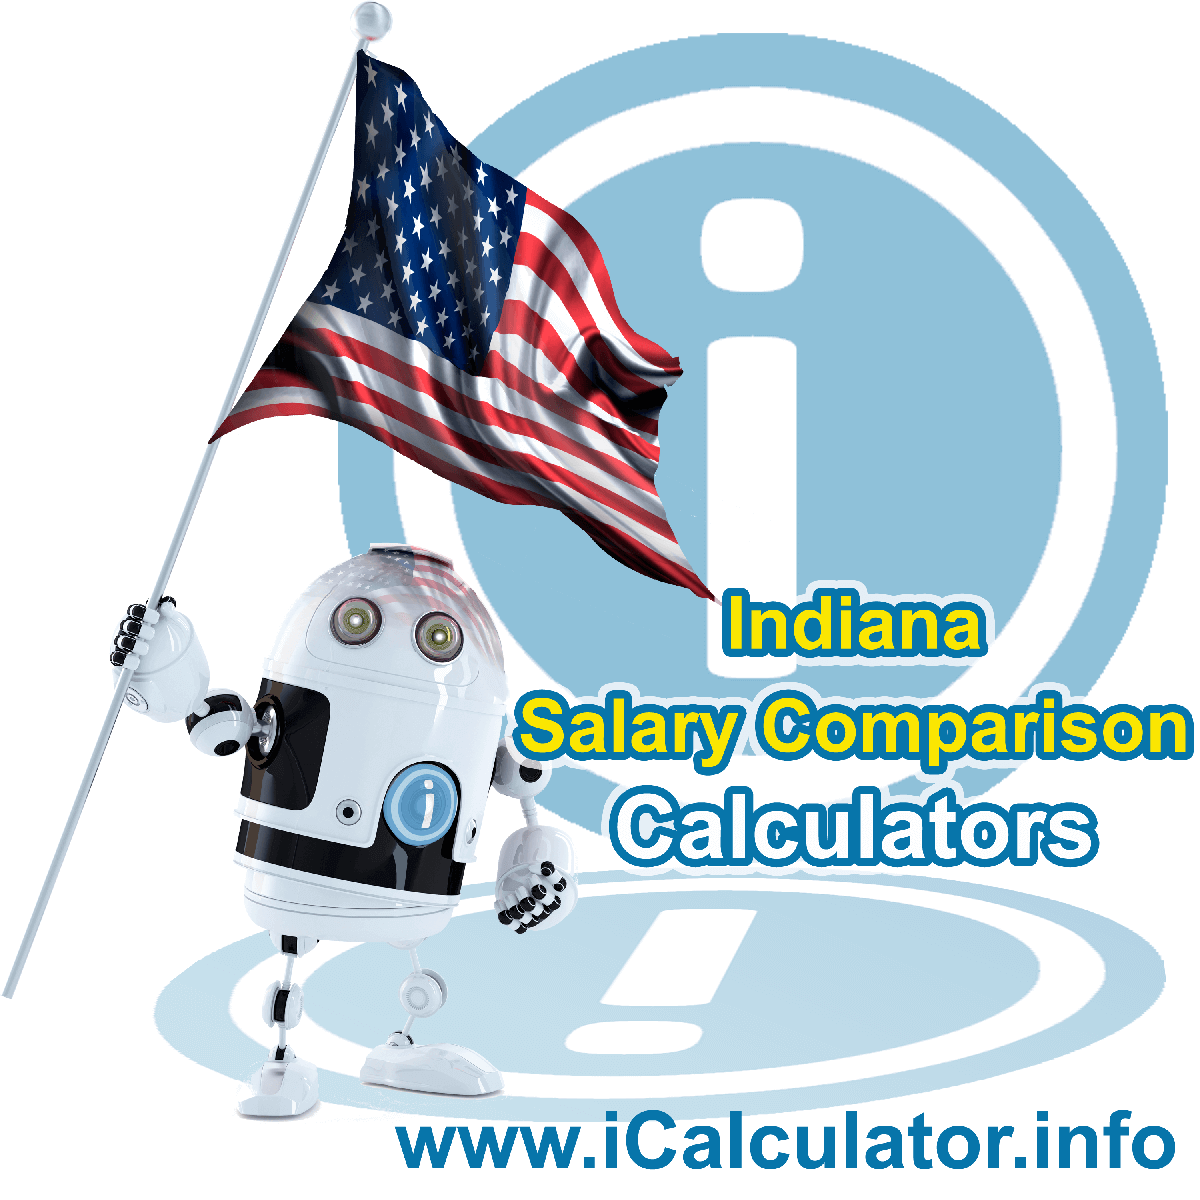 Indiana Salary Comparison Calculator 2020 | iCalculator | The Indiana Salary Comparison Calculator allows you to quickly calculate and compare upto 6 salaries in Indiana or between other states for the 2020 tax year and historical tax years. Its an excellent tool for jobseekers, pay raise comparison and comparison of salaries between different US States